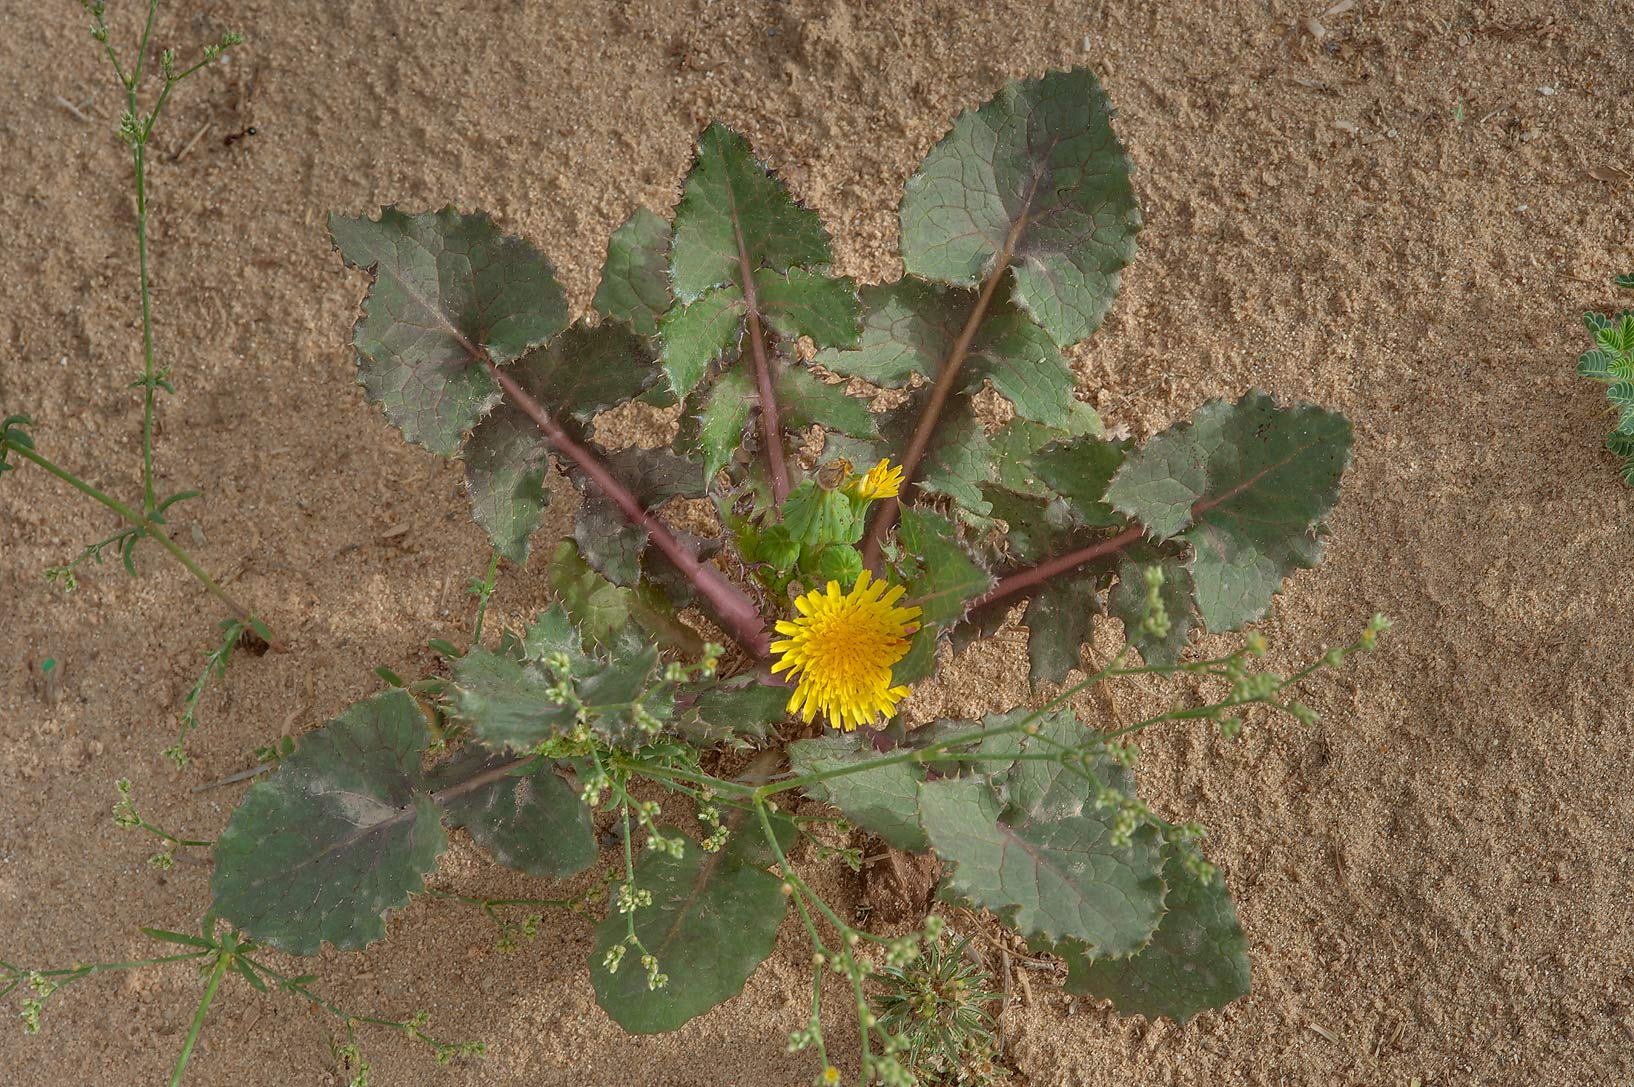 Smooth sow thistle (Sonchus oleraceus) grown near...of Khashem Al Nekhsh. Southern Qatar